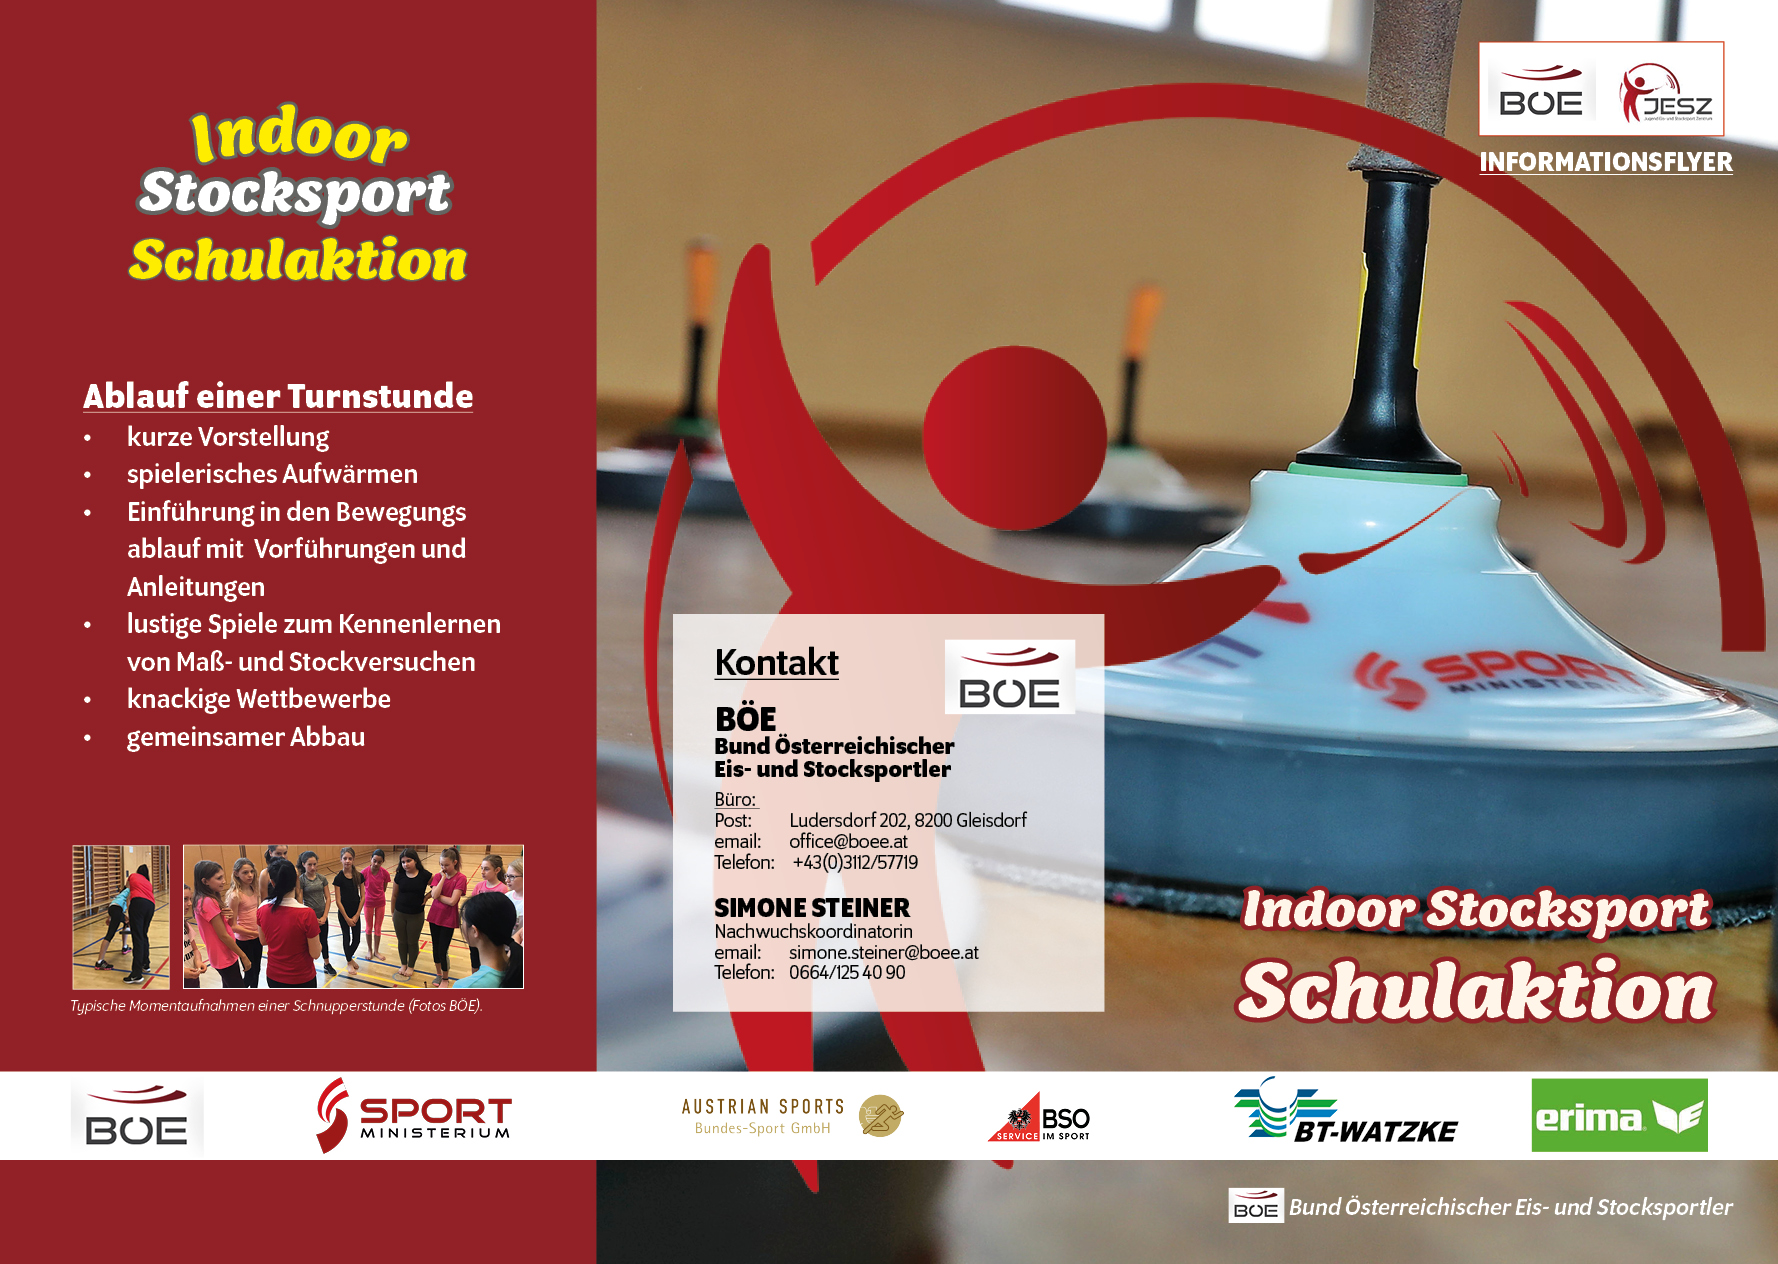 BOEE FLYER Schulaktion 2018 2019 jpg dateien